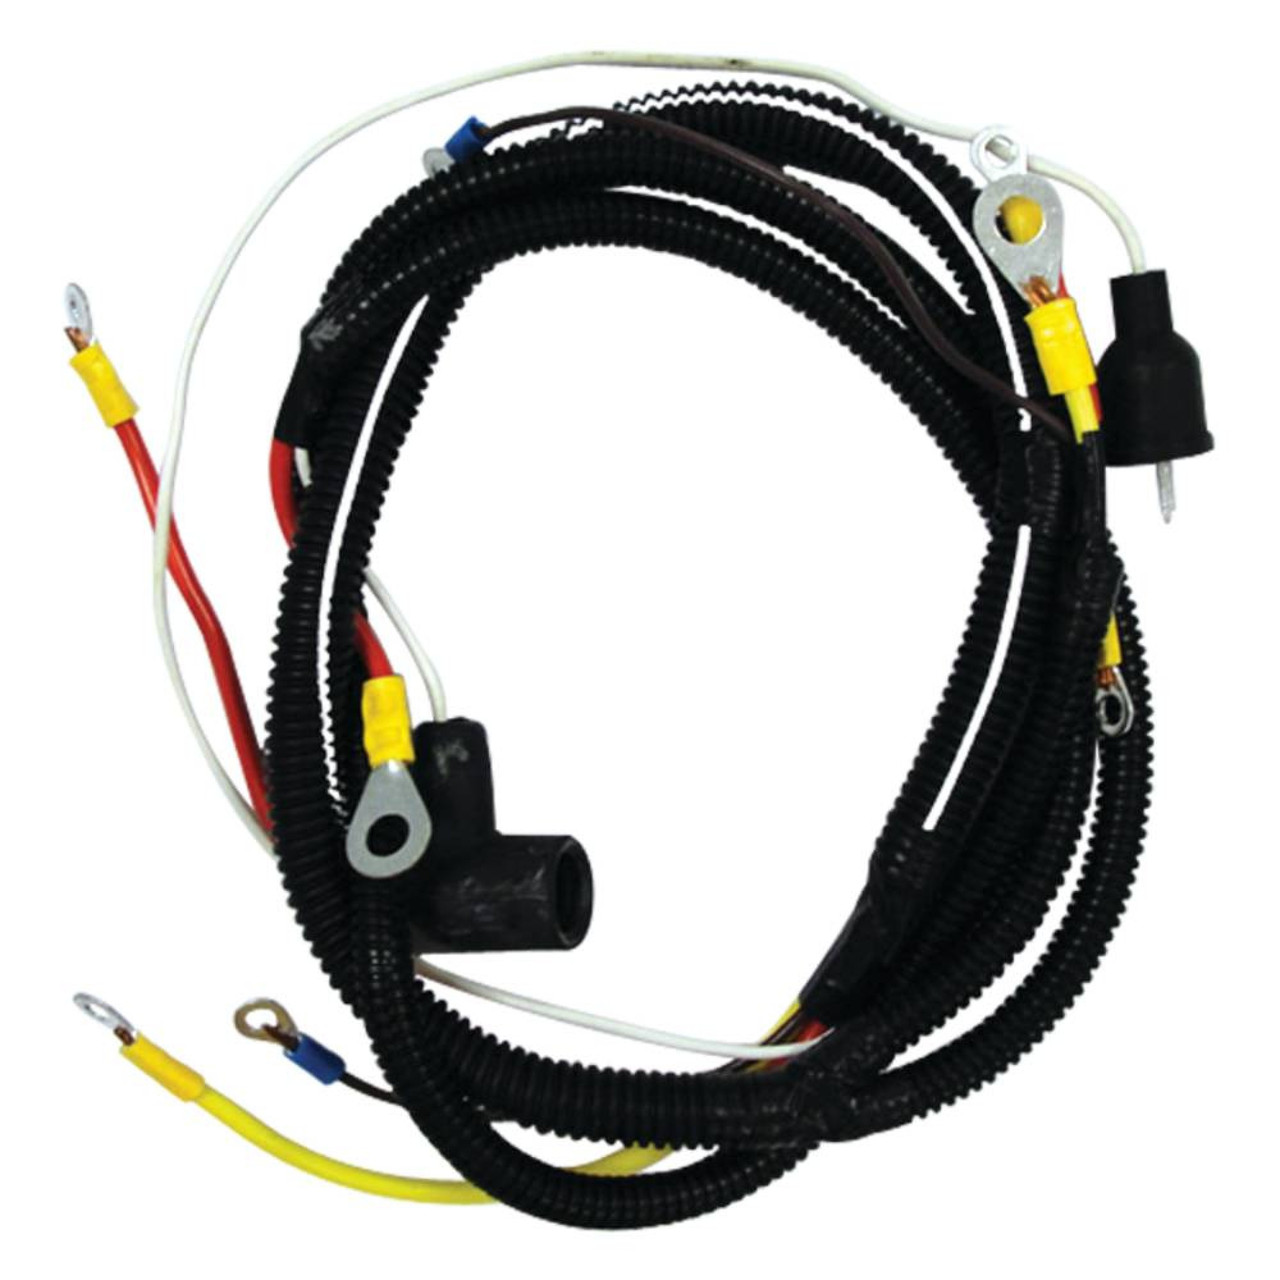 hight resolution of new wiring harness for ford new holland 2n 8n 9n complete tractord3d71ba2asa5oz cloudfront net